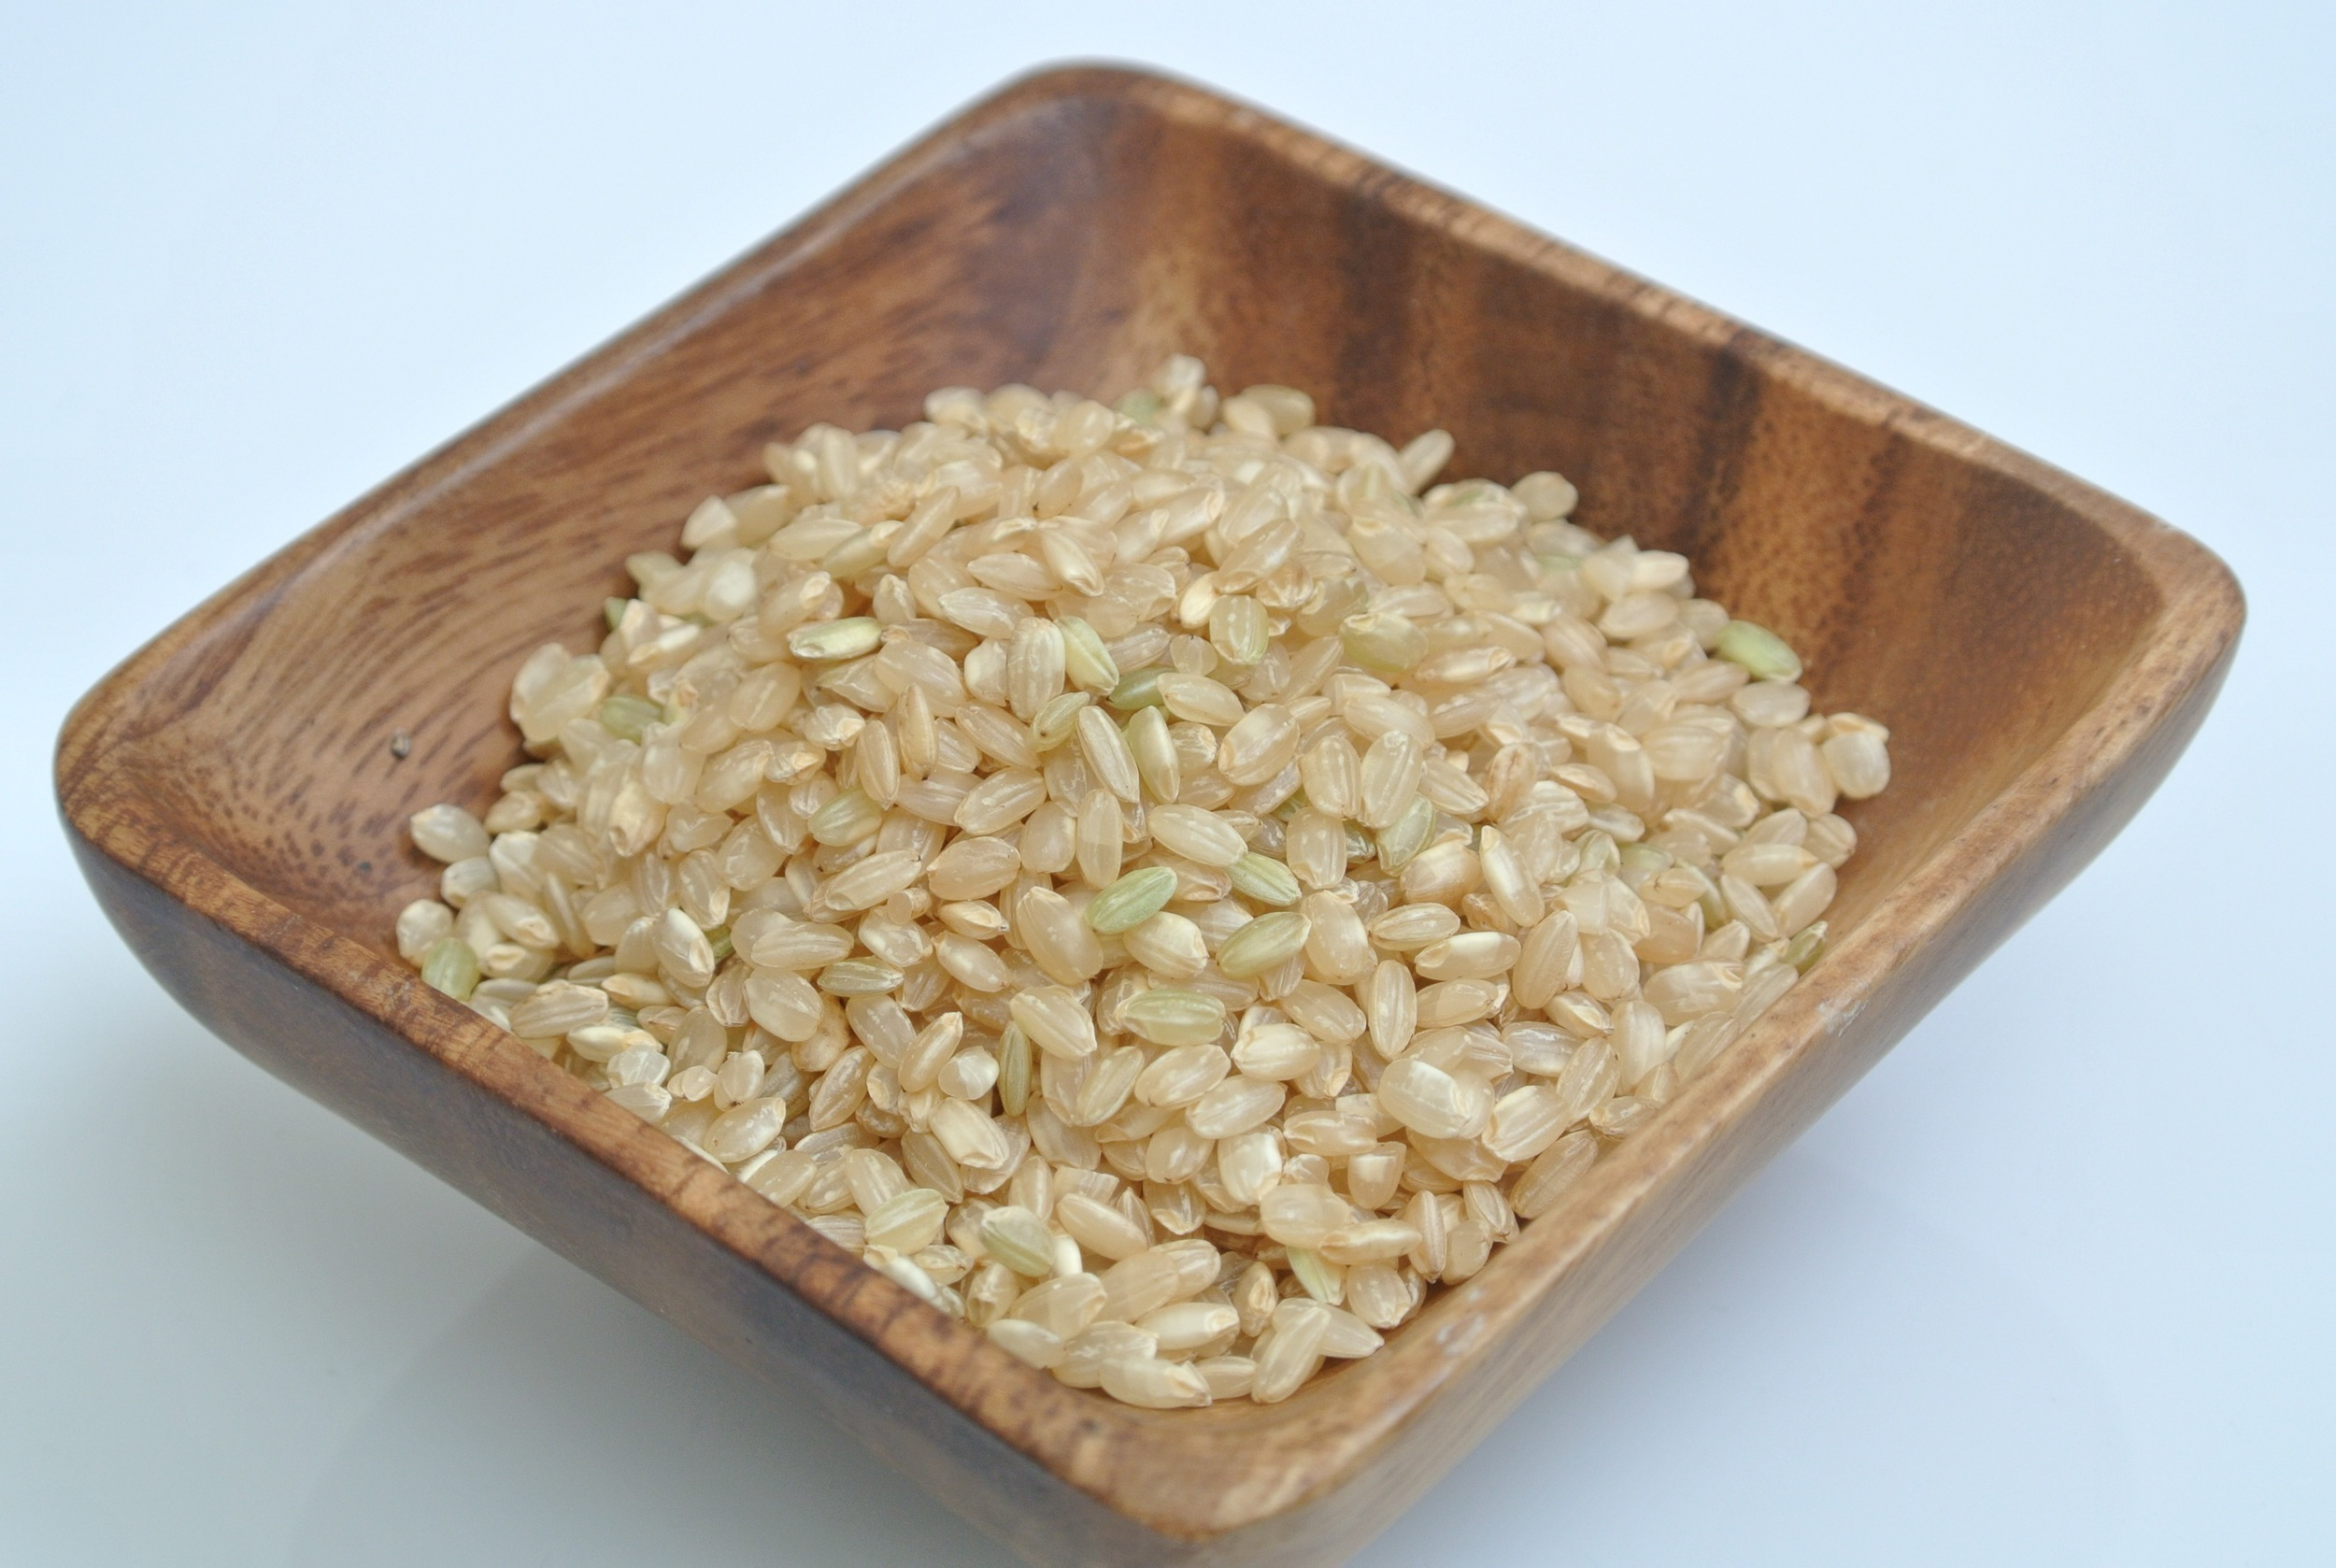 Brown Rice  is unmilled whole grain rice and is more   nutritious and flavorful than white rice.